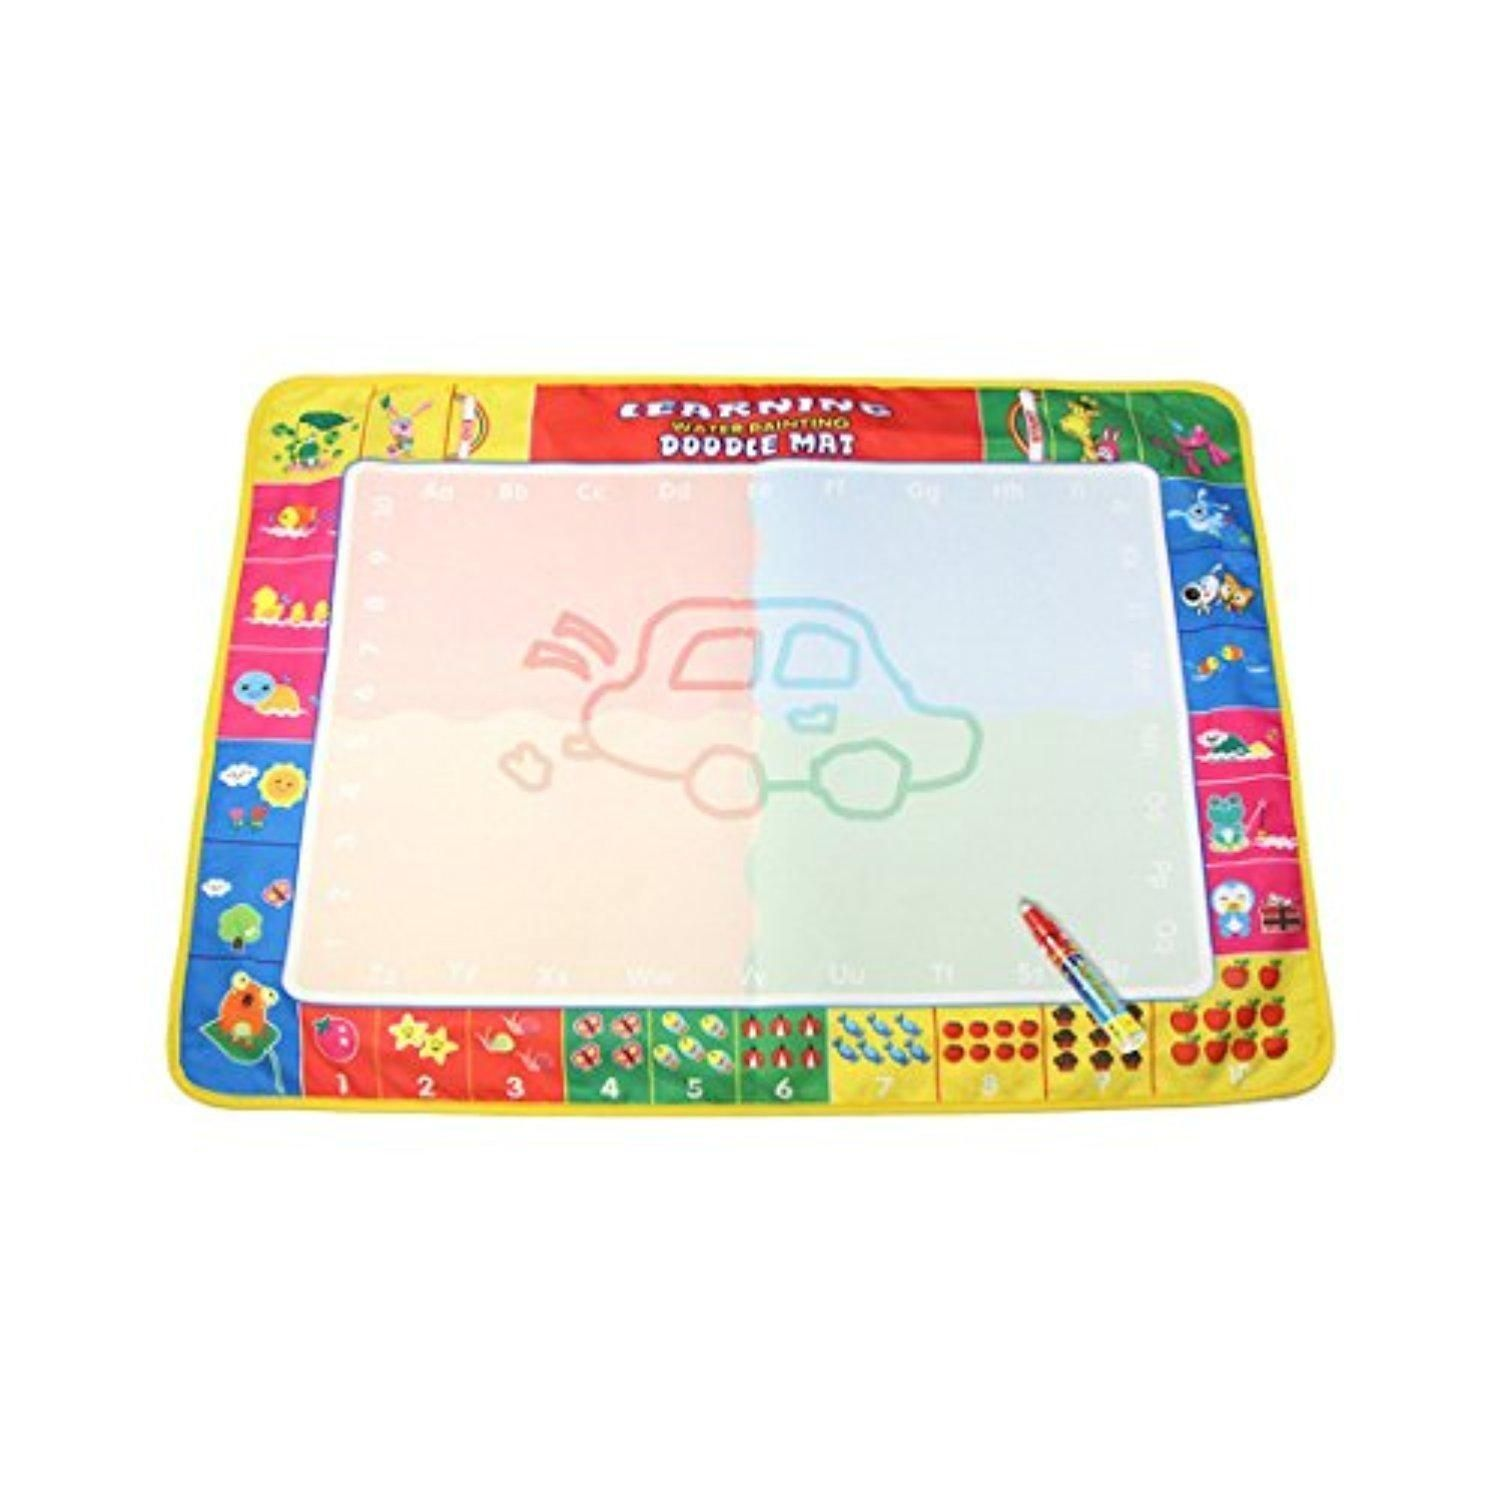 Coolplay Kids New Water Drawing Painting Writing Mat Board Magic Pen Doodle Toy Gift 80 X 60cm Box Packing Brought T Pen Doodles Water Drawing Drawing Toys